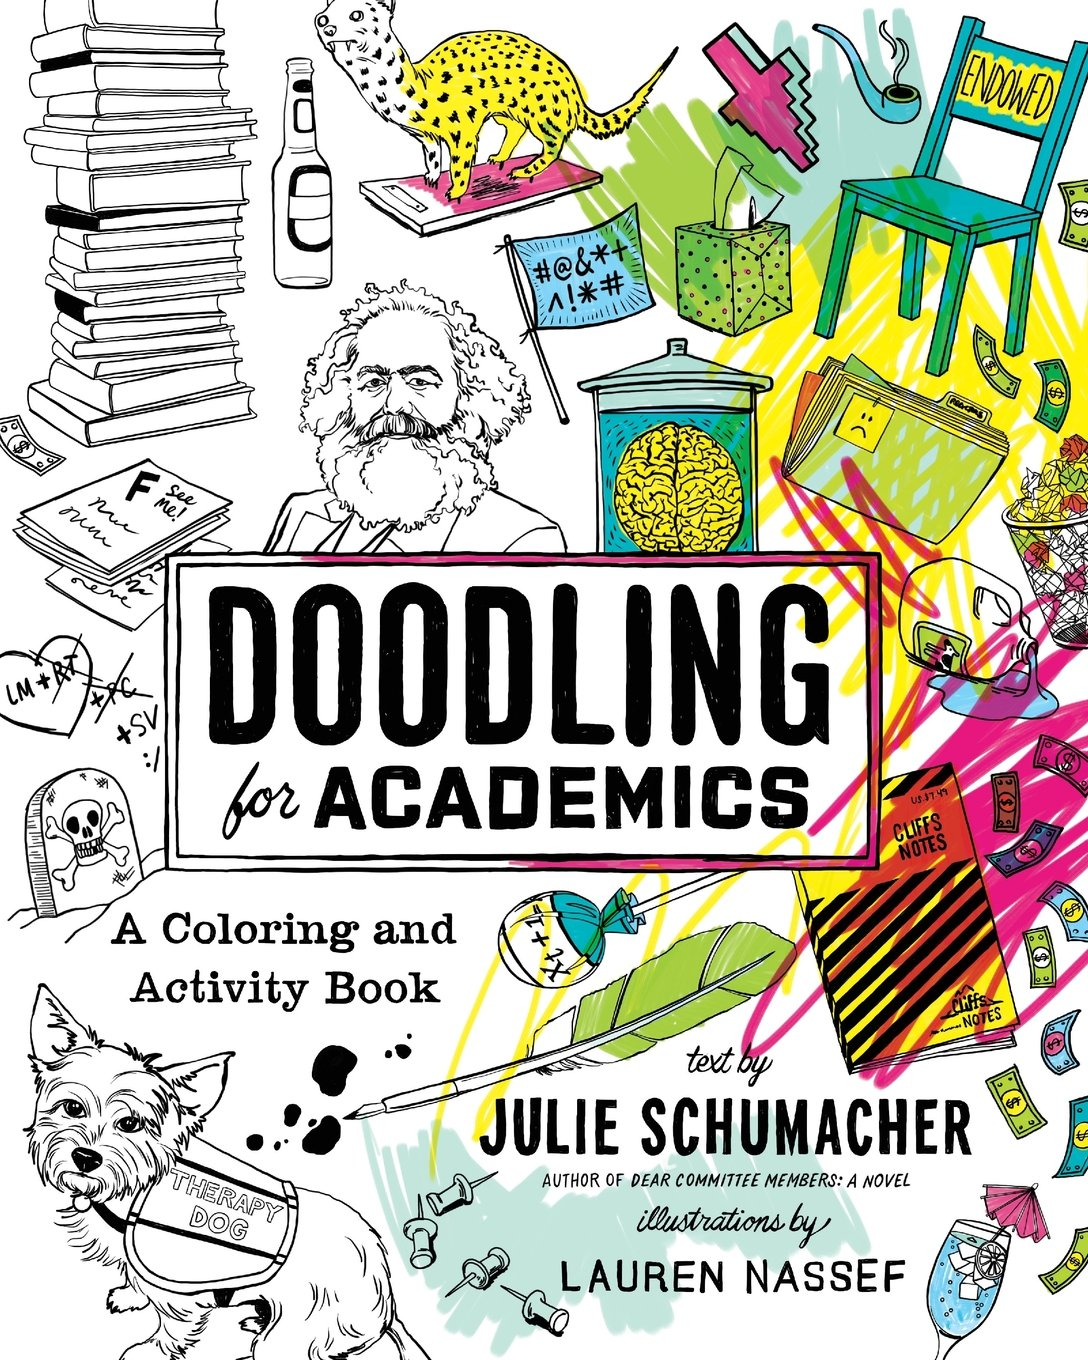 Color book party mn - Amazon Com Doodling For Academics A Coloring And Activity Book Chicago Guides To Academic Life 9780226467047 Julie Schumacher Lauren Nassef Books